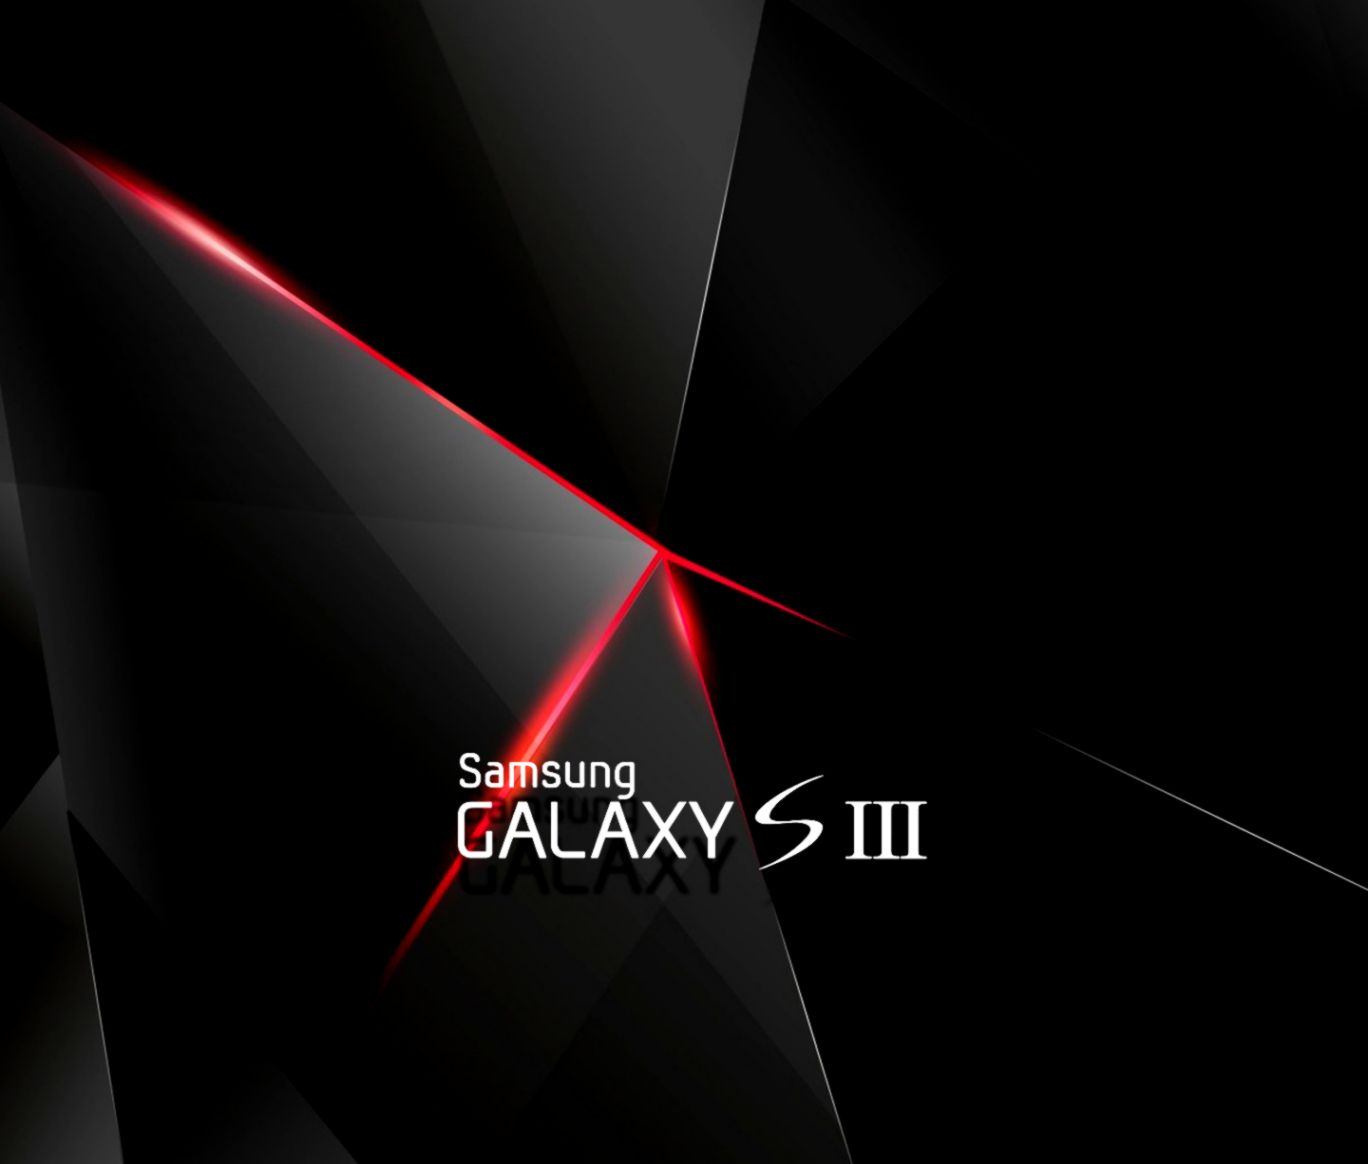 samsung galaxy s3 hd wallpaper | wallpapers area